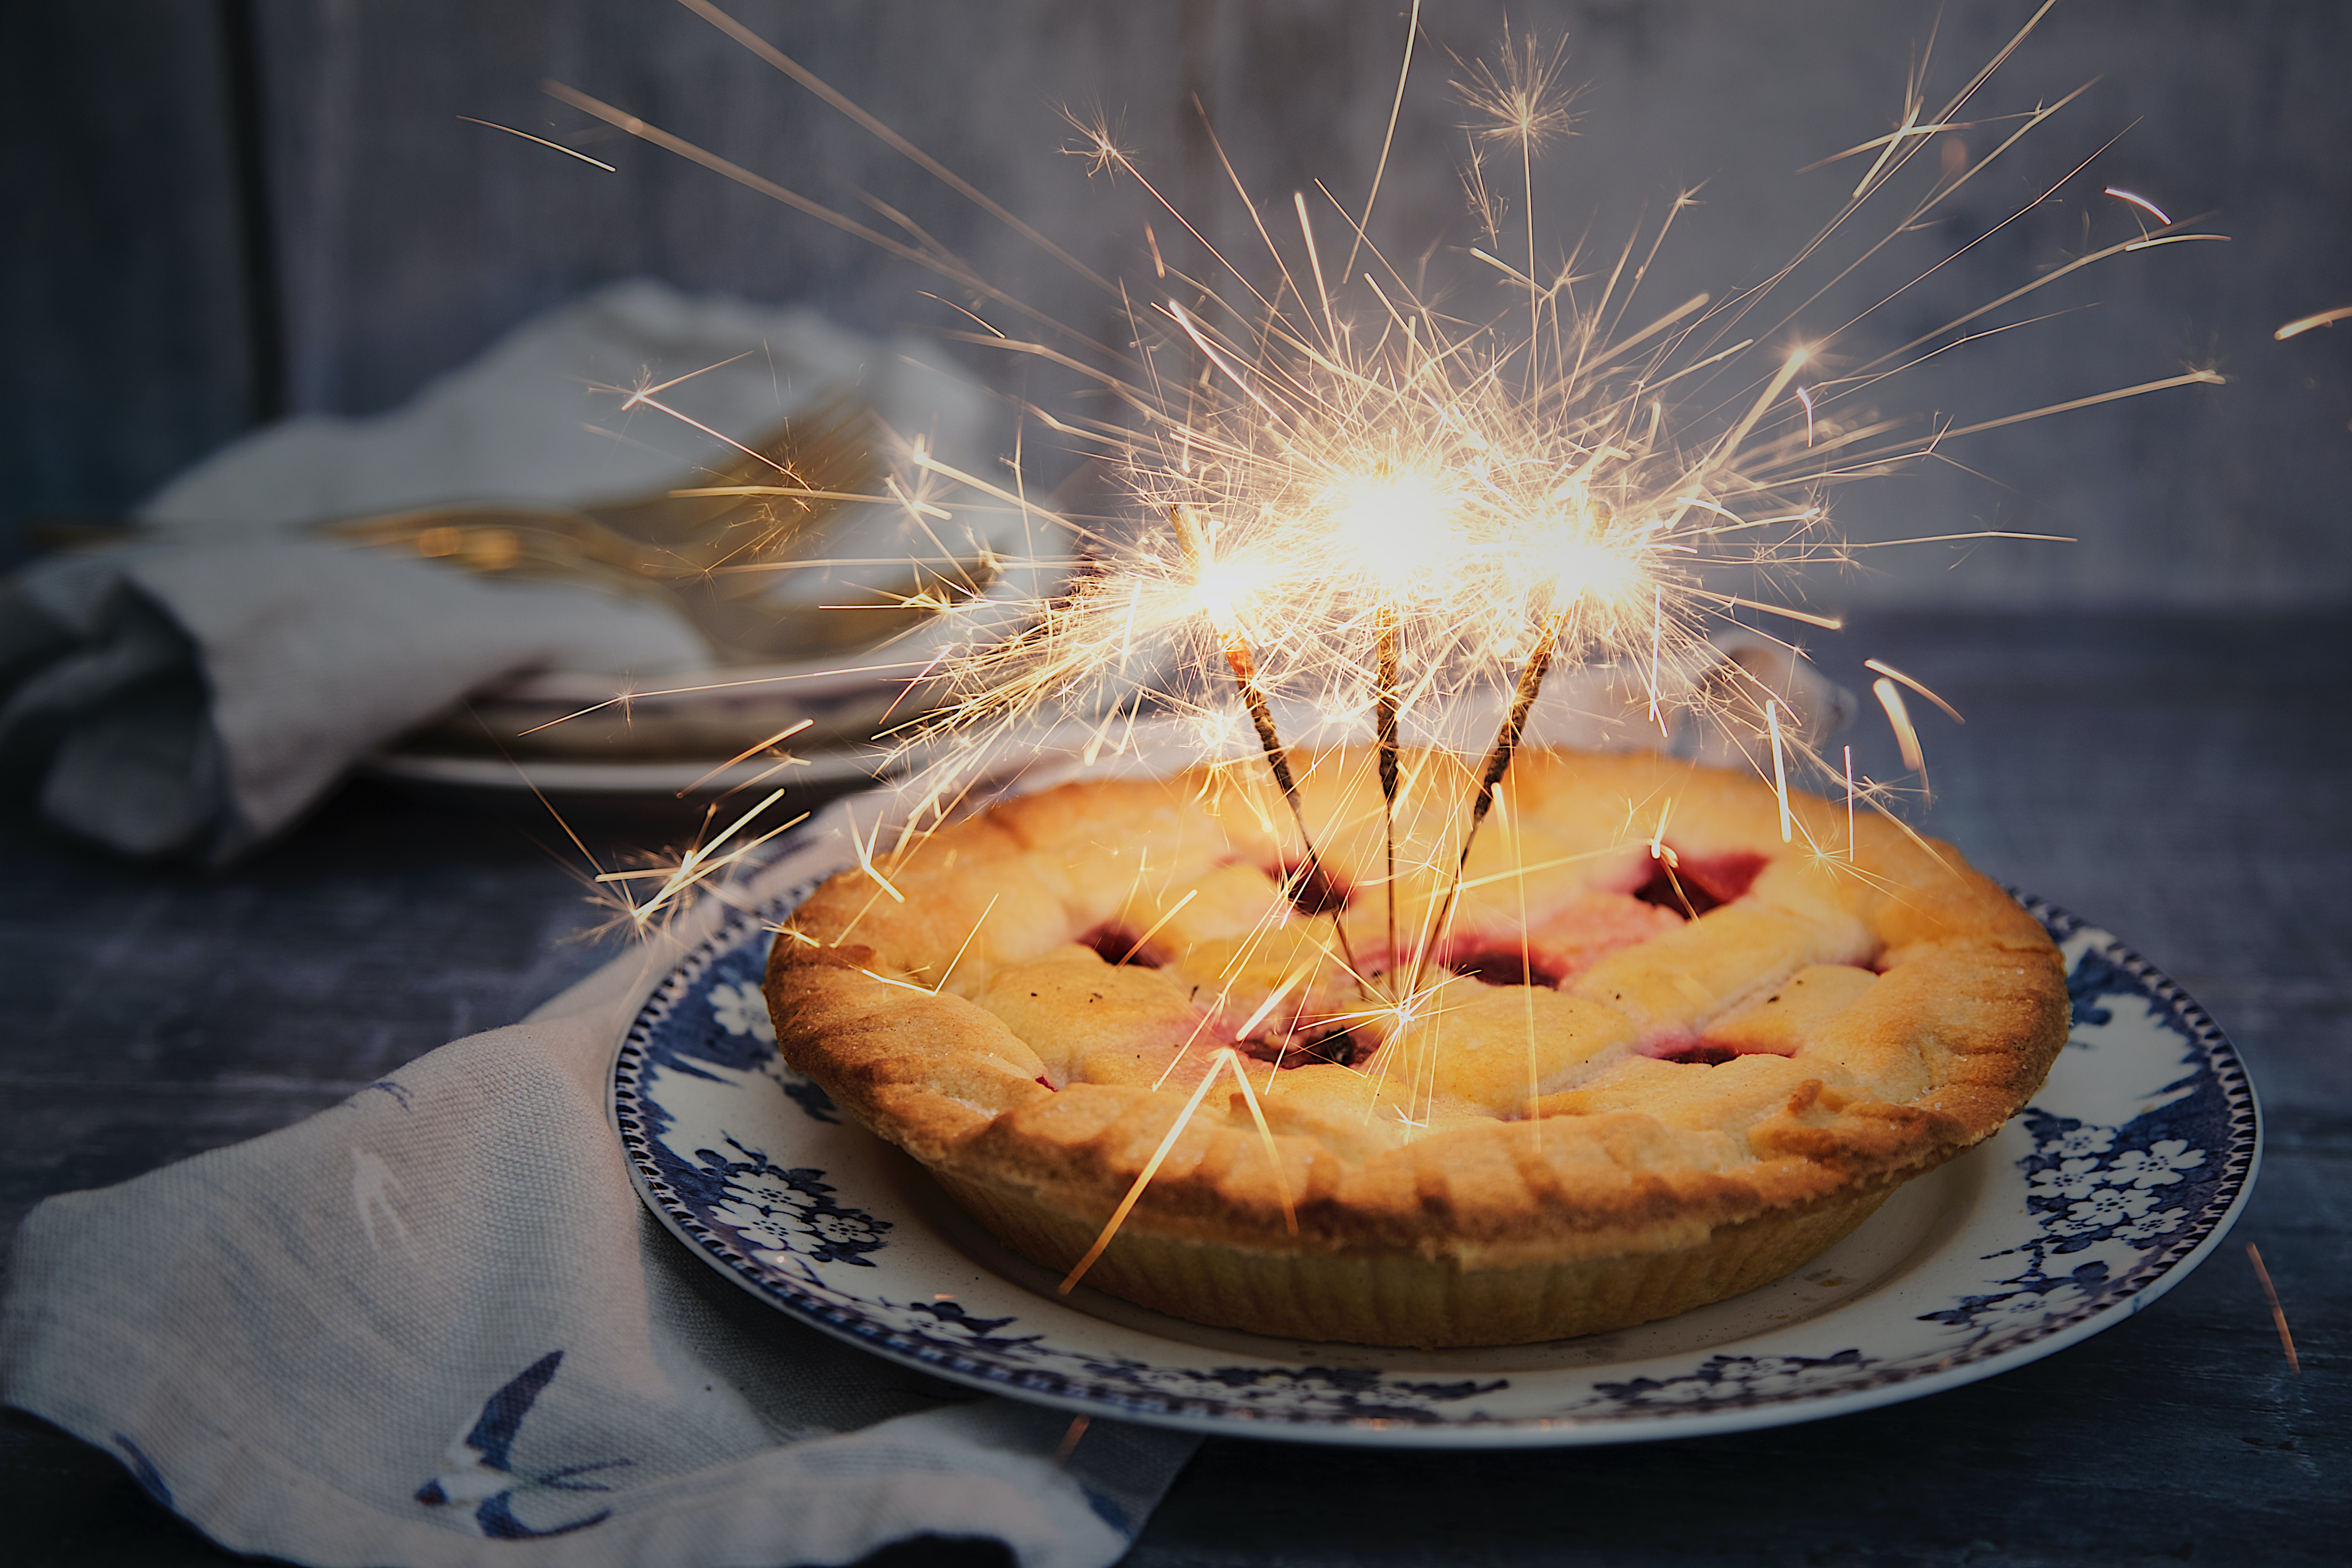 Sparklers lit in a fresh berry pie